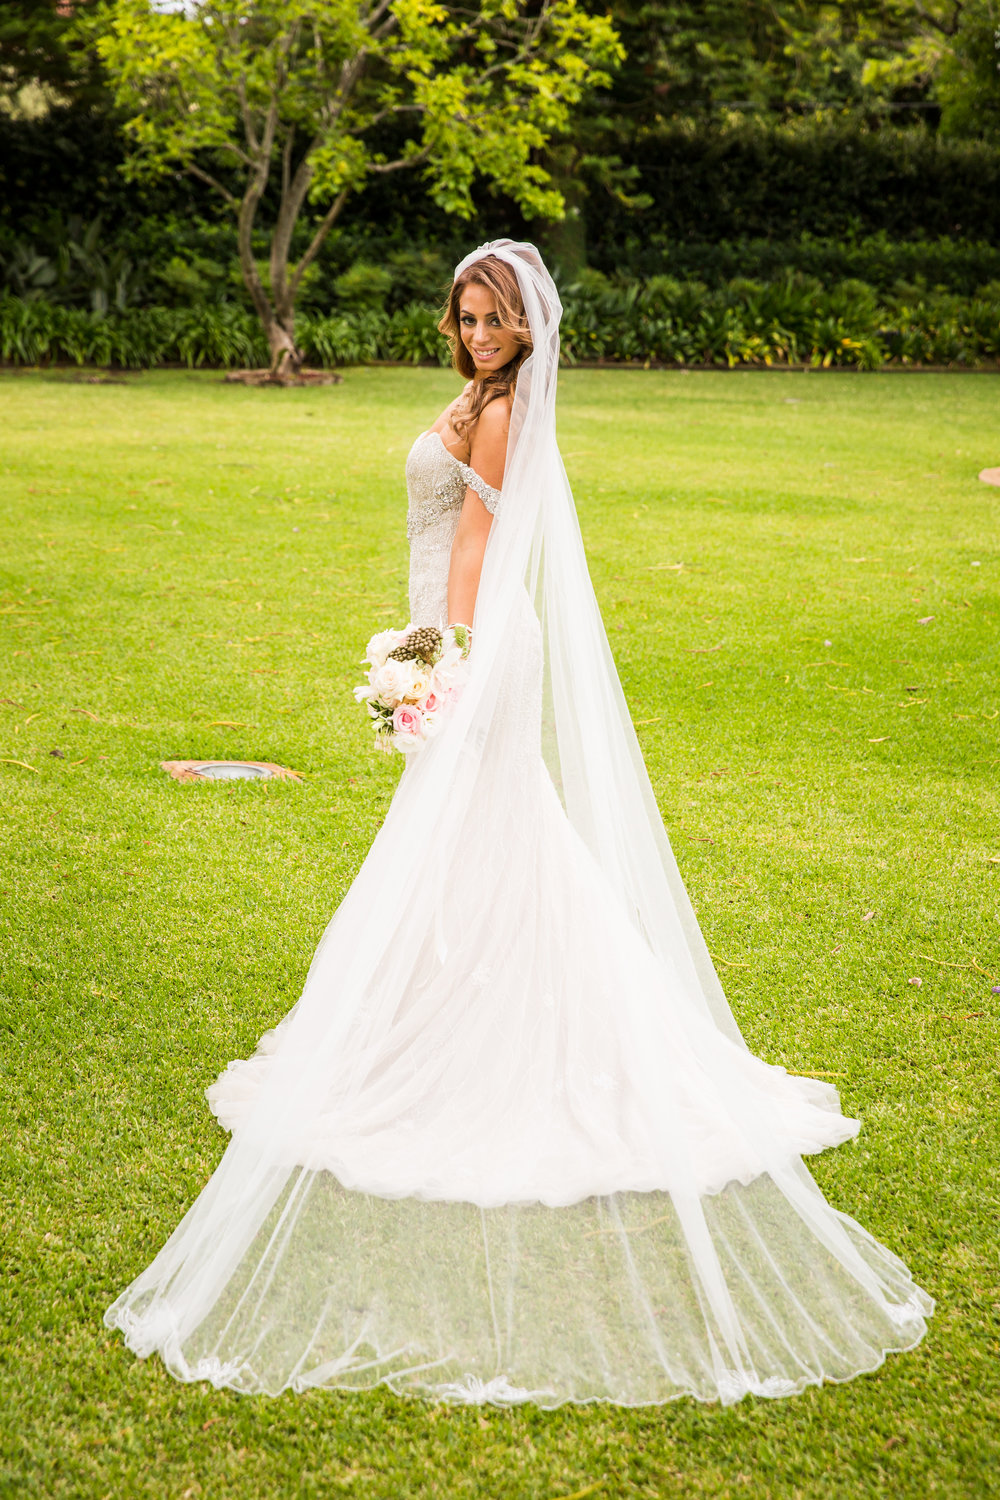 Cathedral Bridal Veil - A Curzon Hall Wedding - T-One Photography